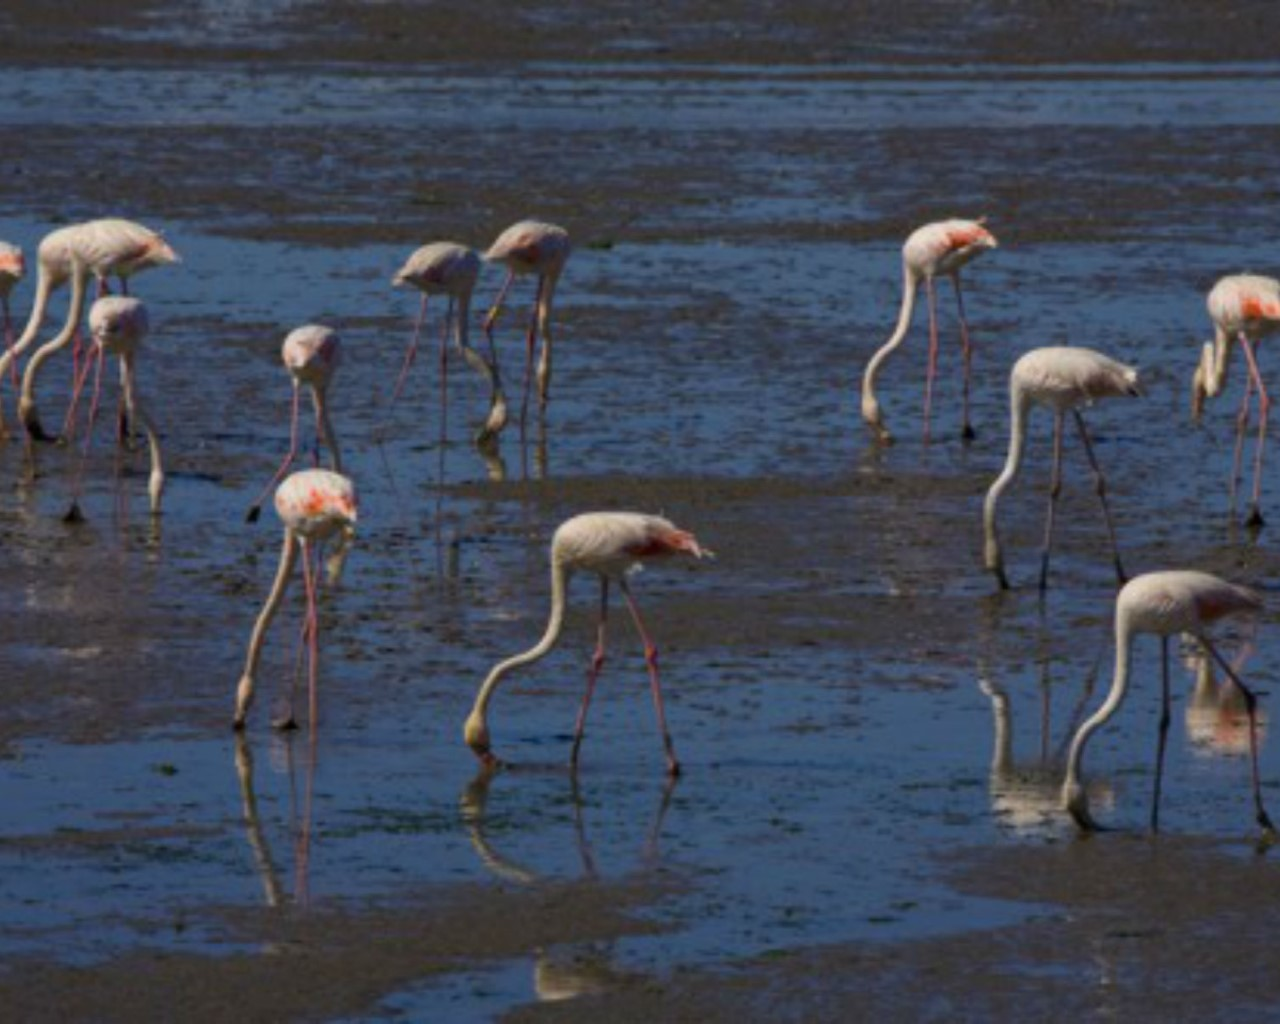 Flamingos in the Bay of Seixal